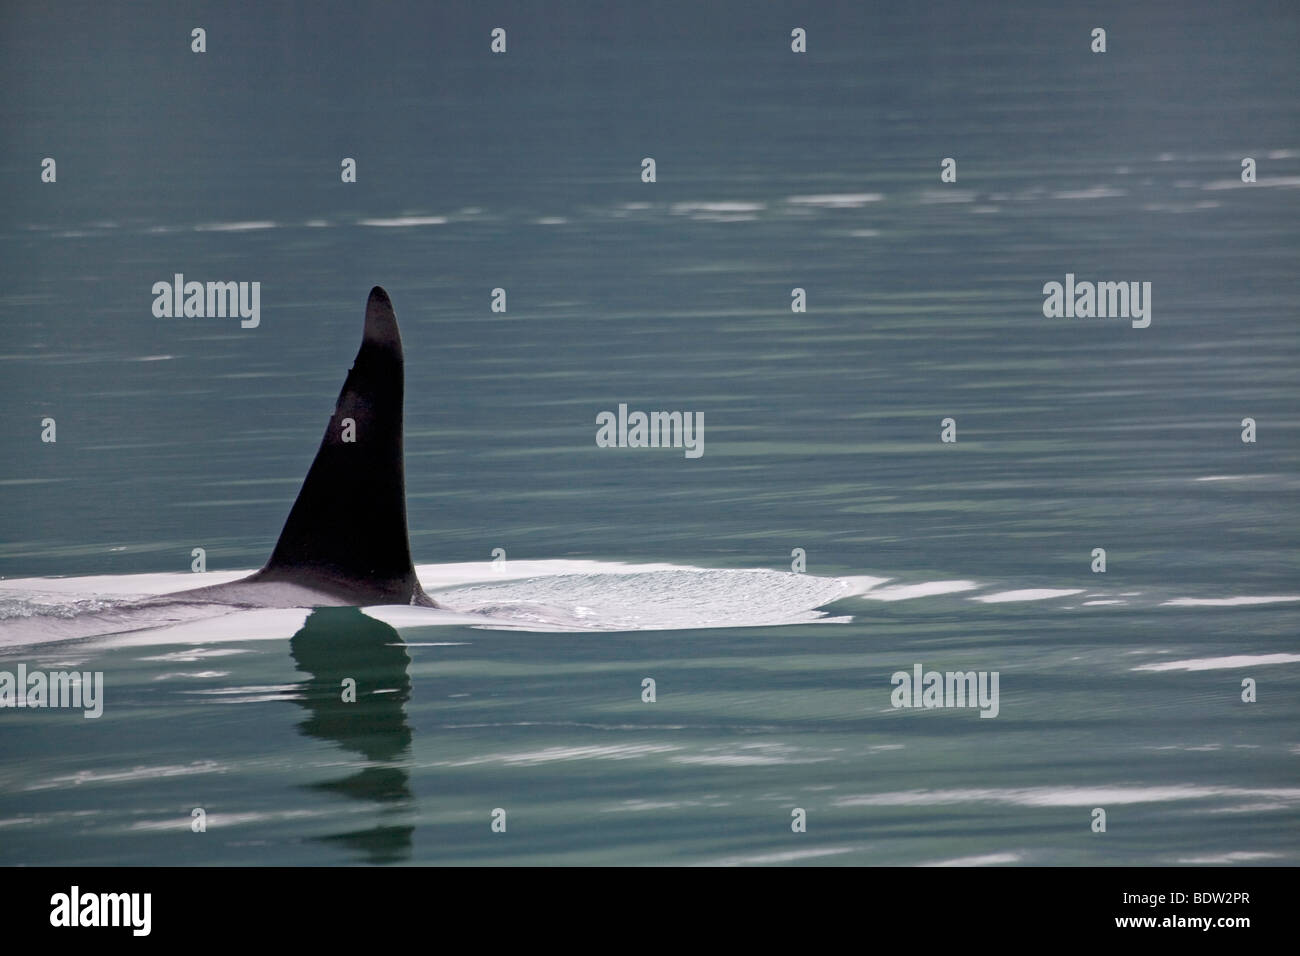 Orca fin protruding from water surface - Stock Image